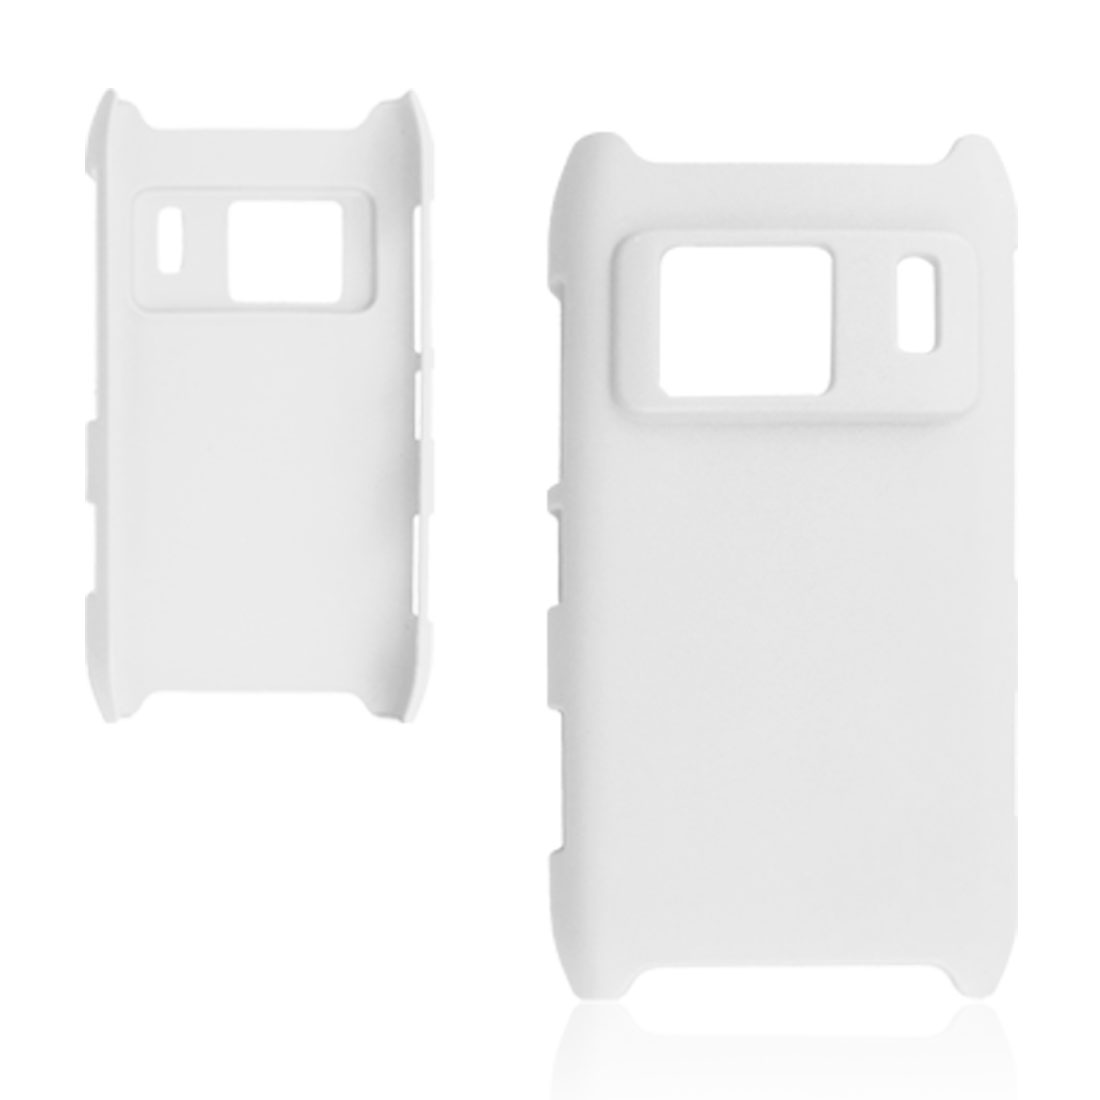 White Rubberized Hard Plastic Shell Cover for Nokia N8